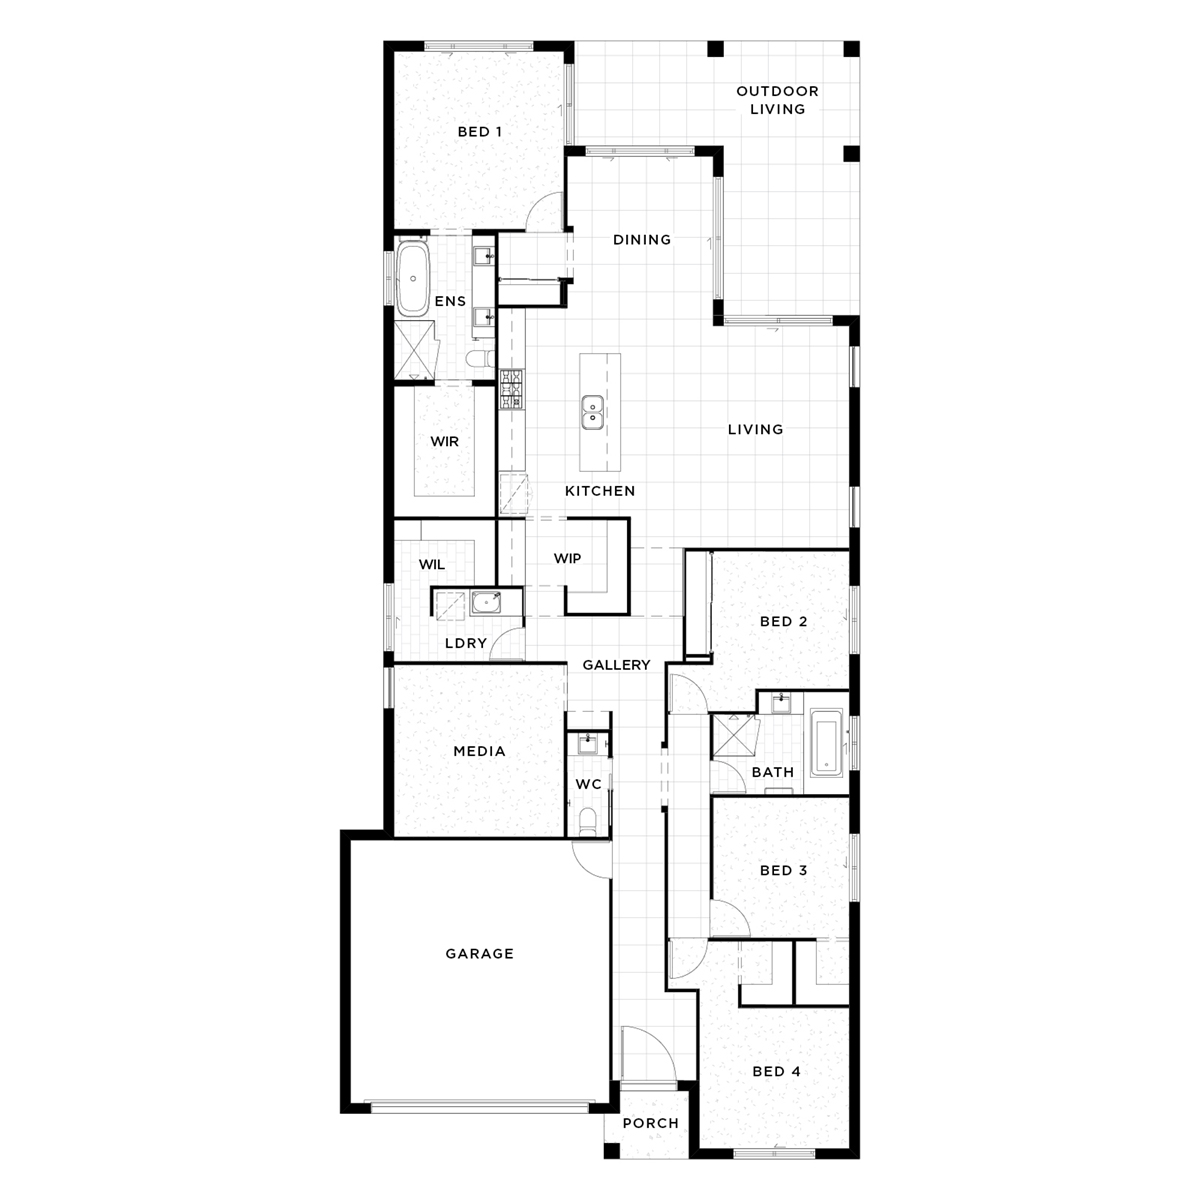 UL House Plans_Adelphi 28